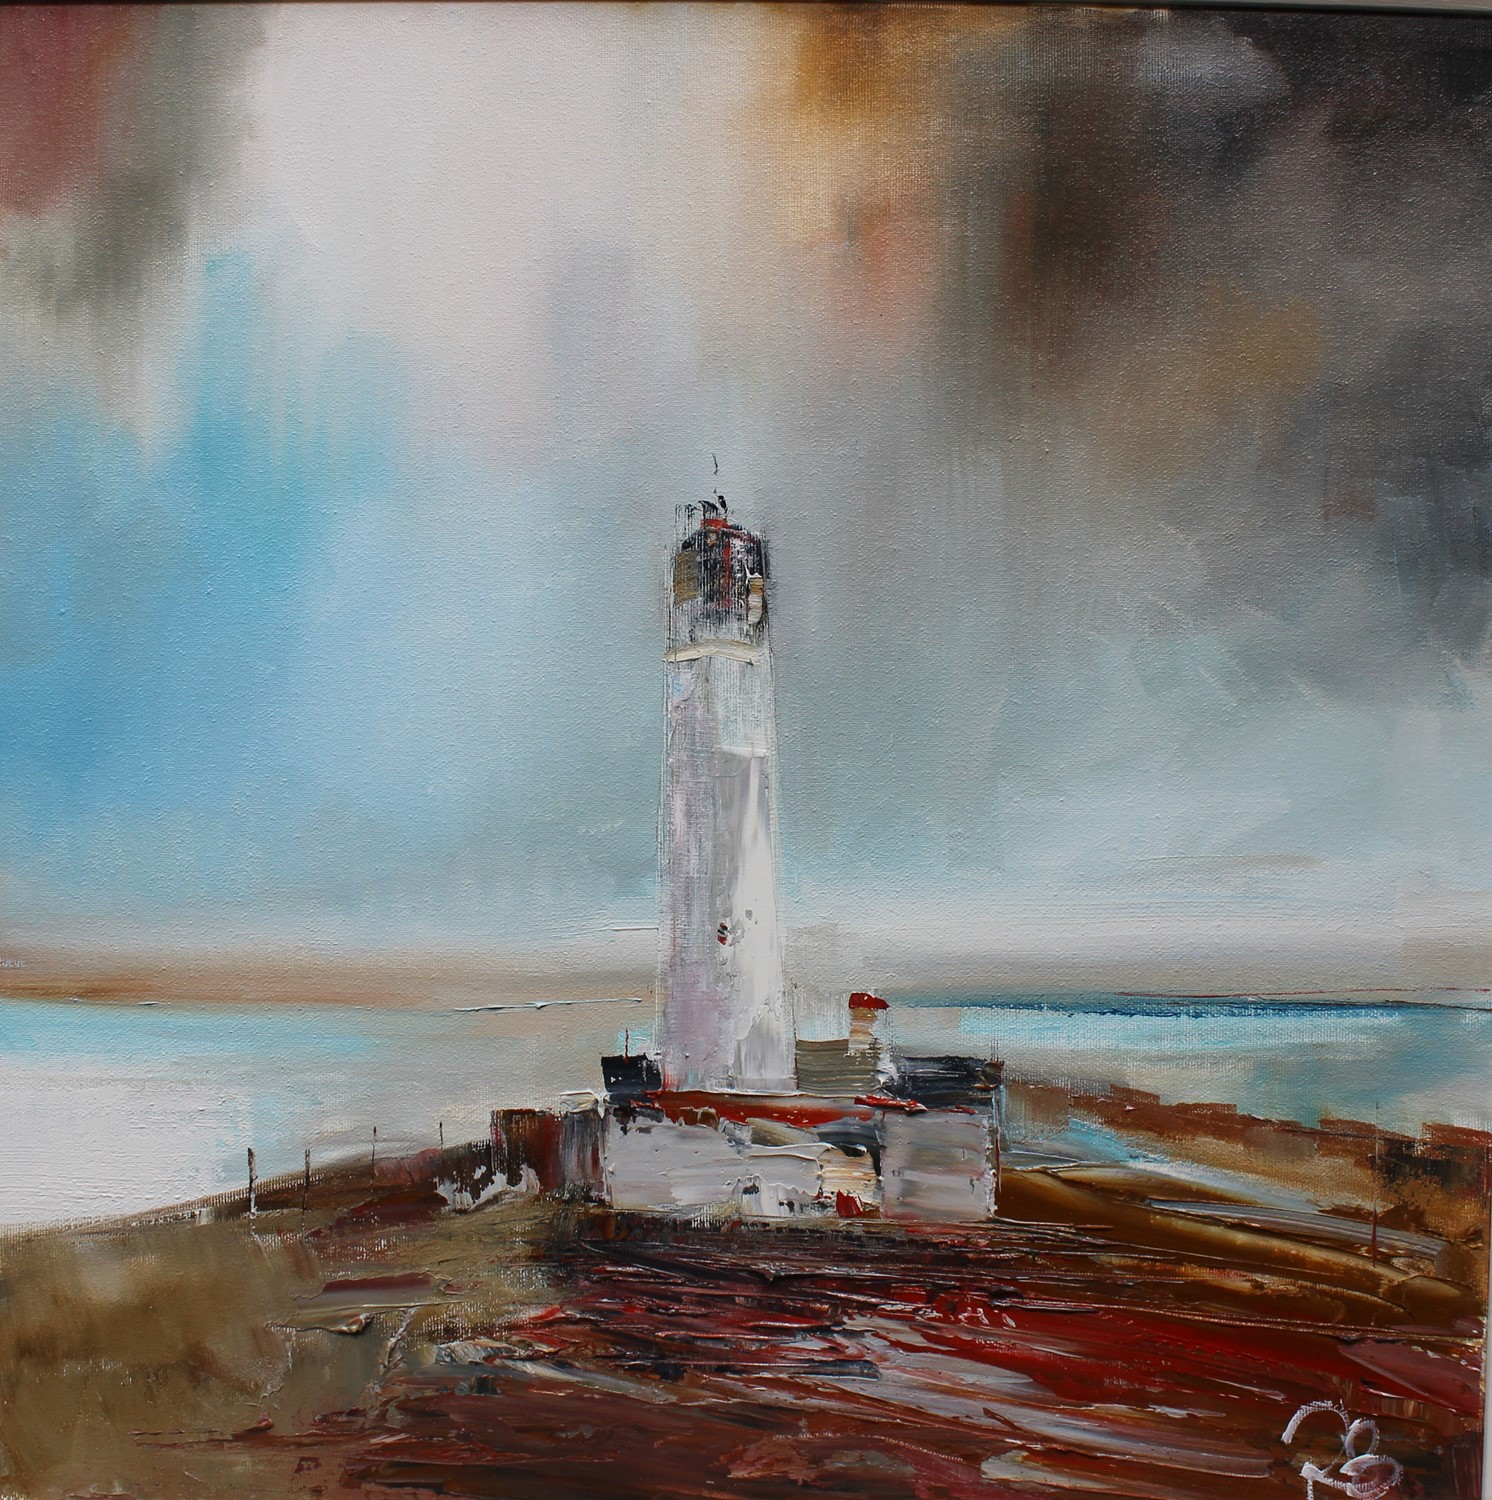 'Lighthouse amid a storm' by artist Rosanne Barr